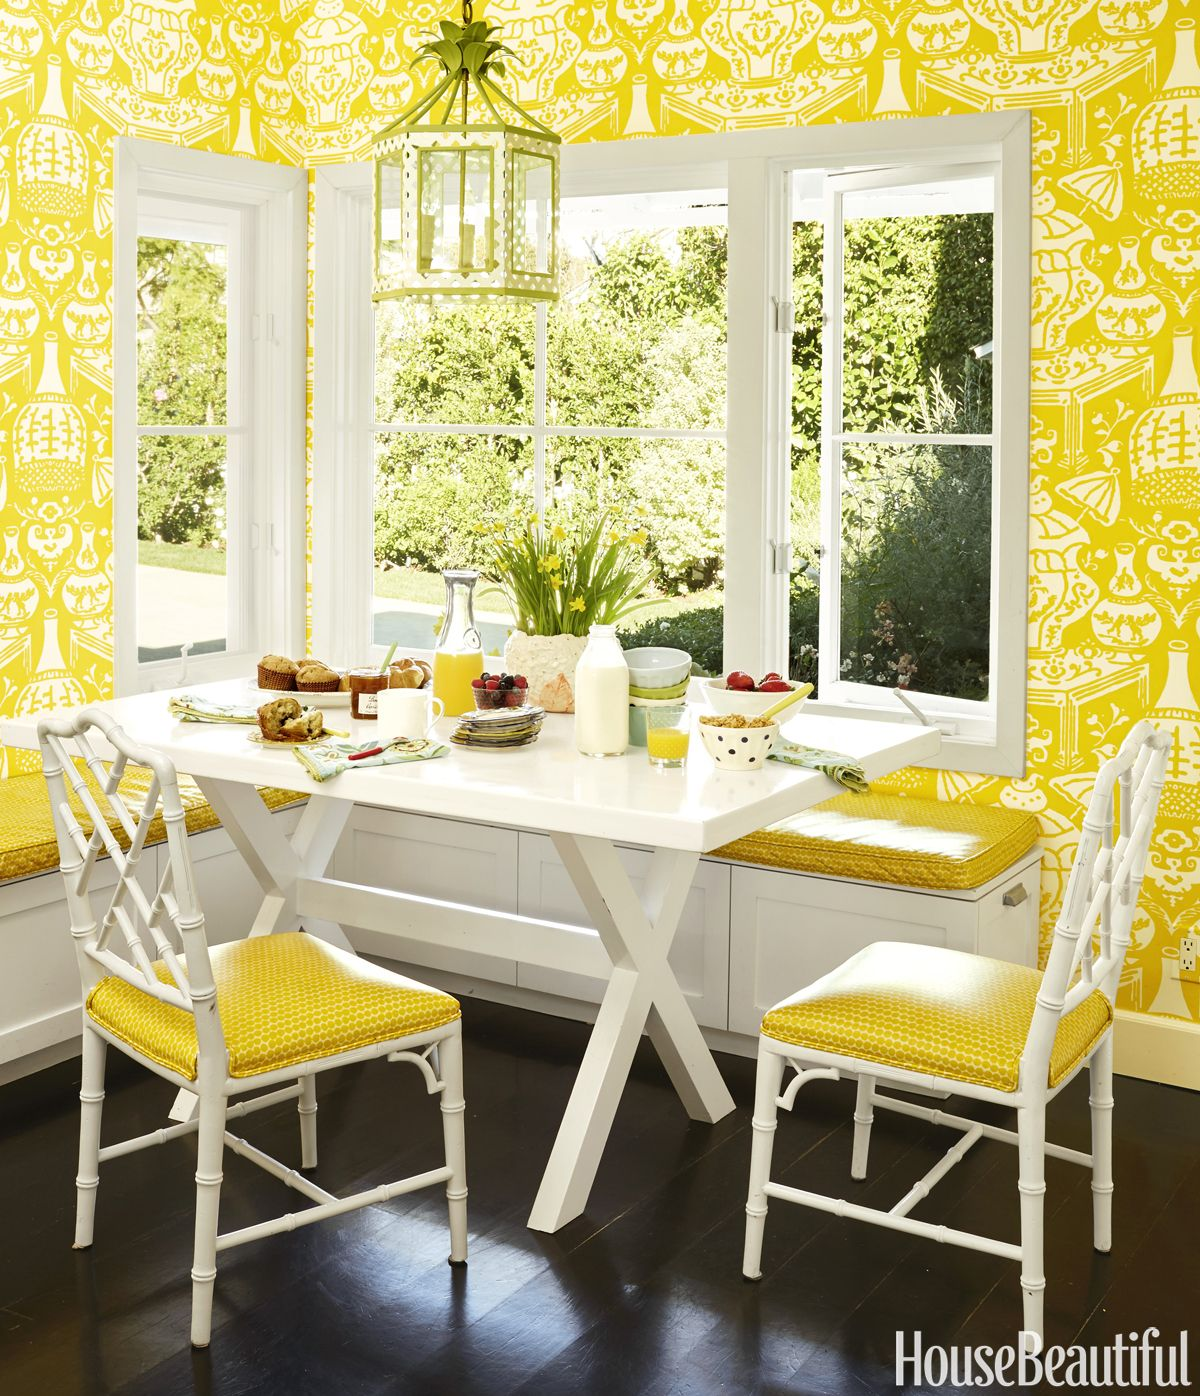 10 Best Floor Paint Colors to Try - Pretty Painted Floor Ideas and ...